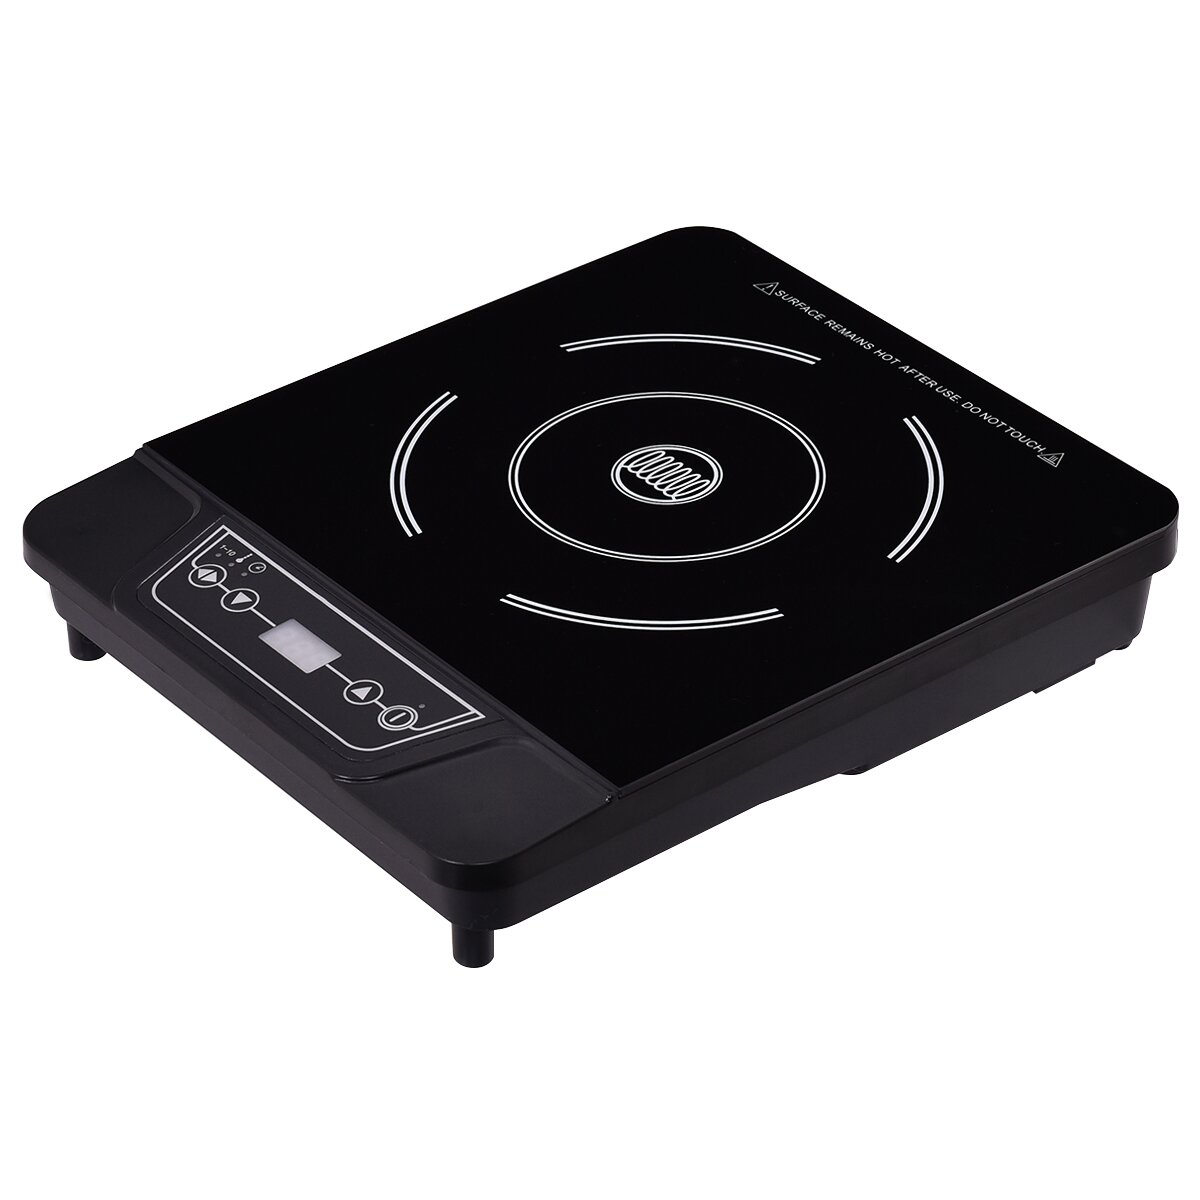 Gymax New Portable Single Burner Digital Hot Plate Electric Induction Cooker 1800W